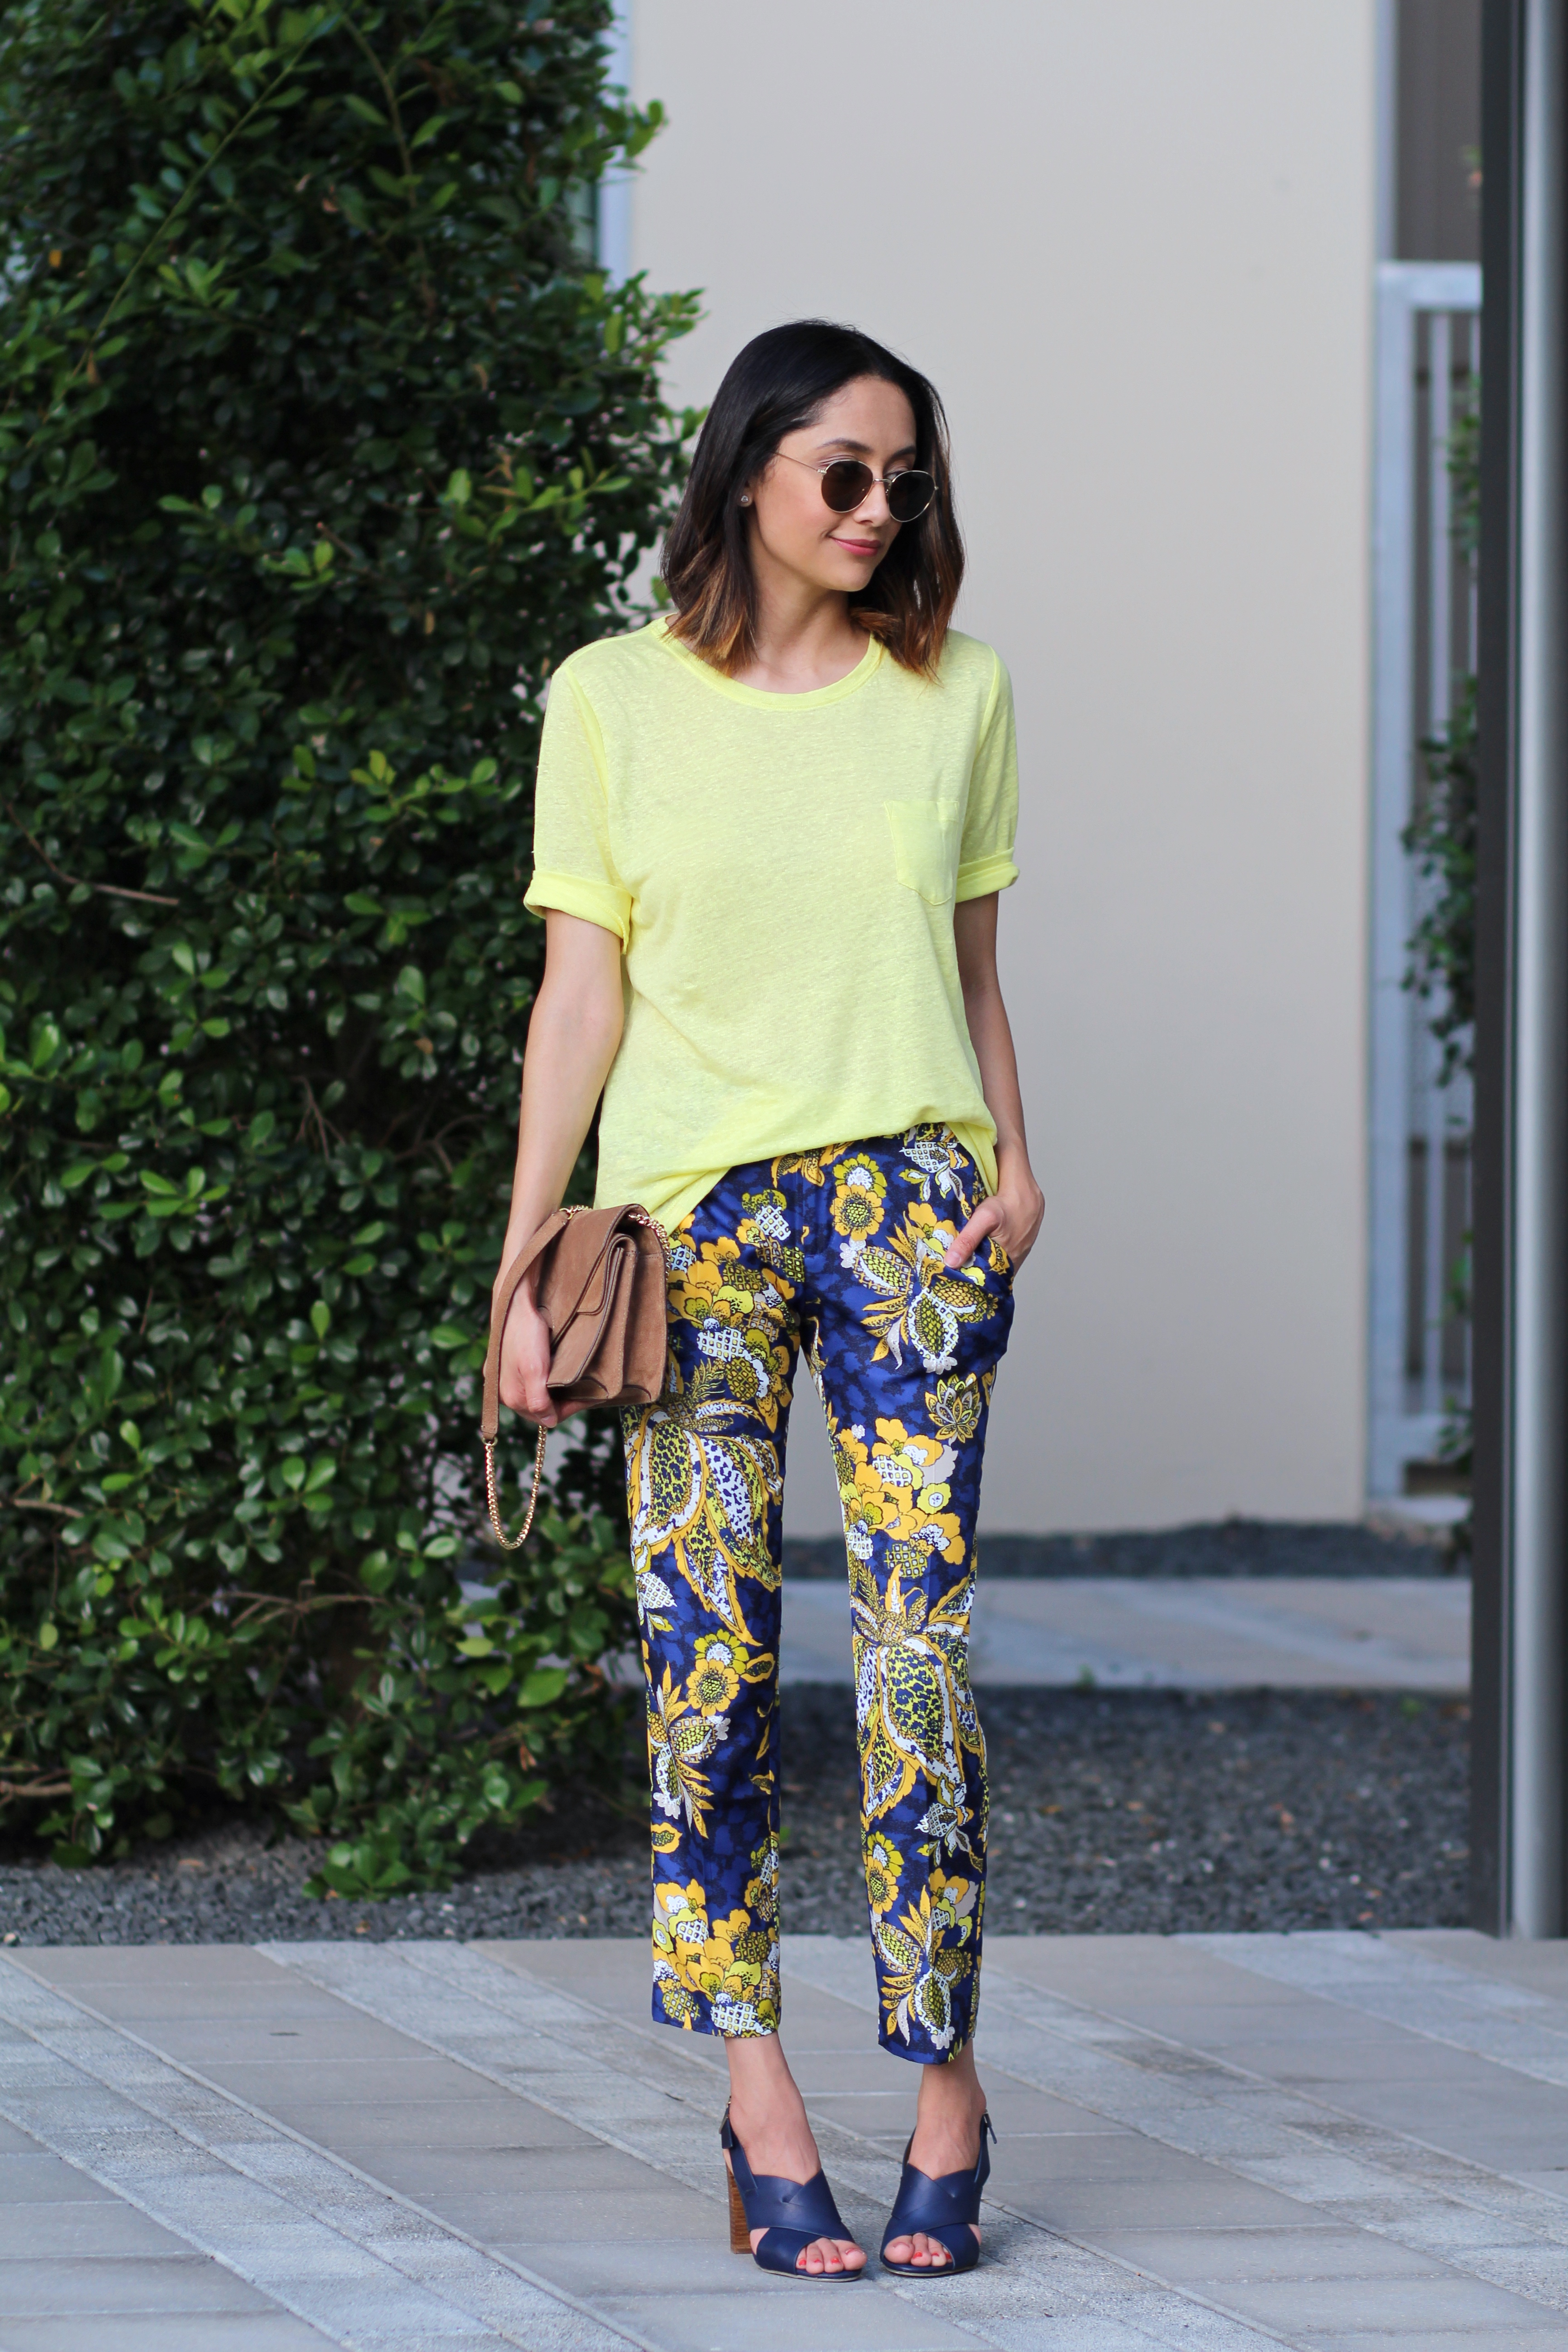 adding more color to your look with printed pants